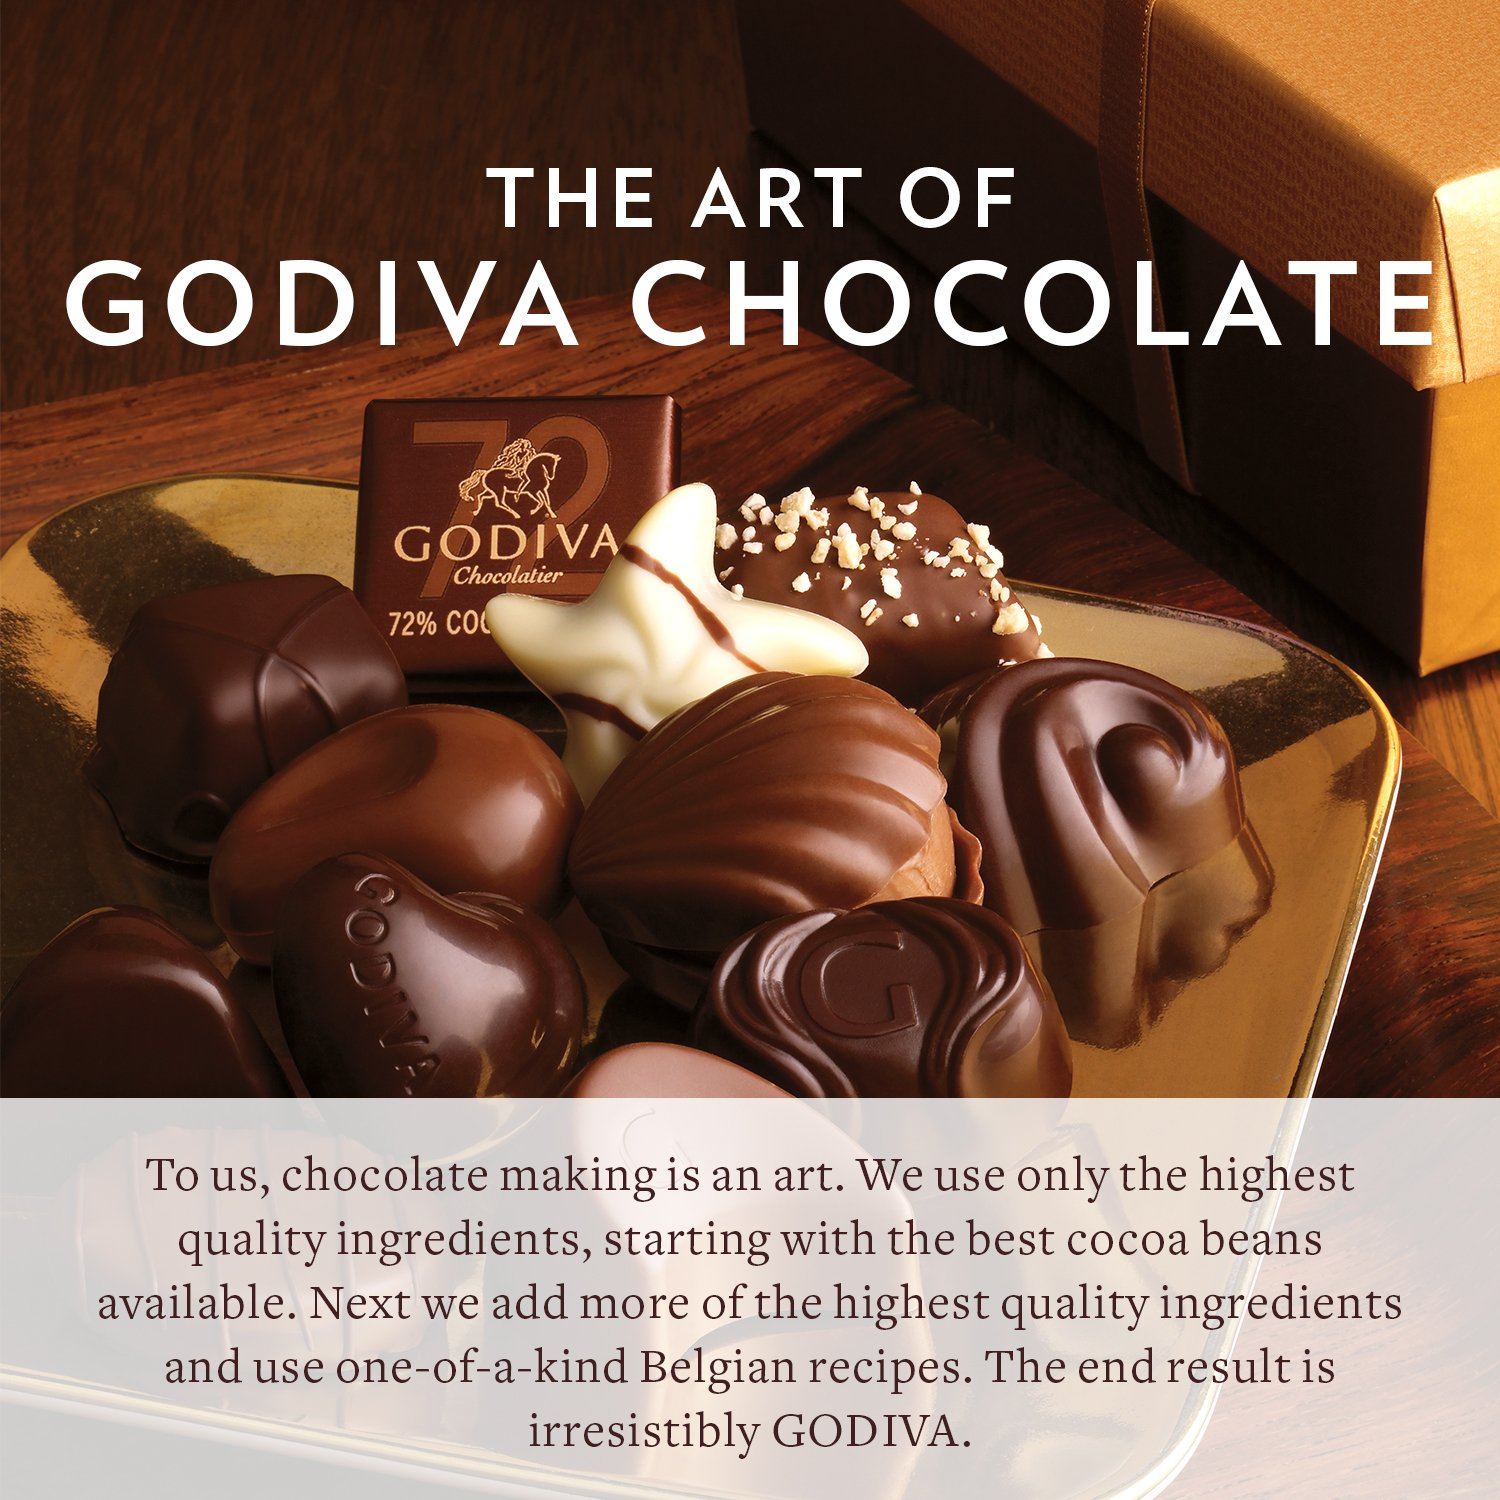 Godiva Chocolatier Assorted Dark Chocolate Truffles, Truffle Gift Box, Great as a Gift, Gifts for Her, Gifts for Mom, 24 Piece by GODIVA Chocolatier (Image #2)